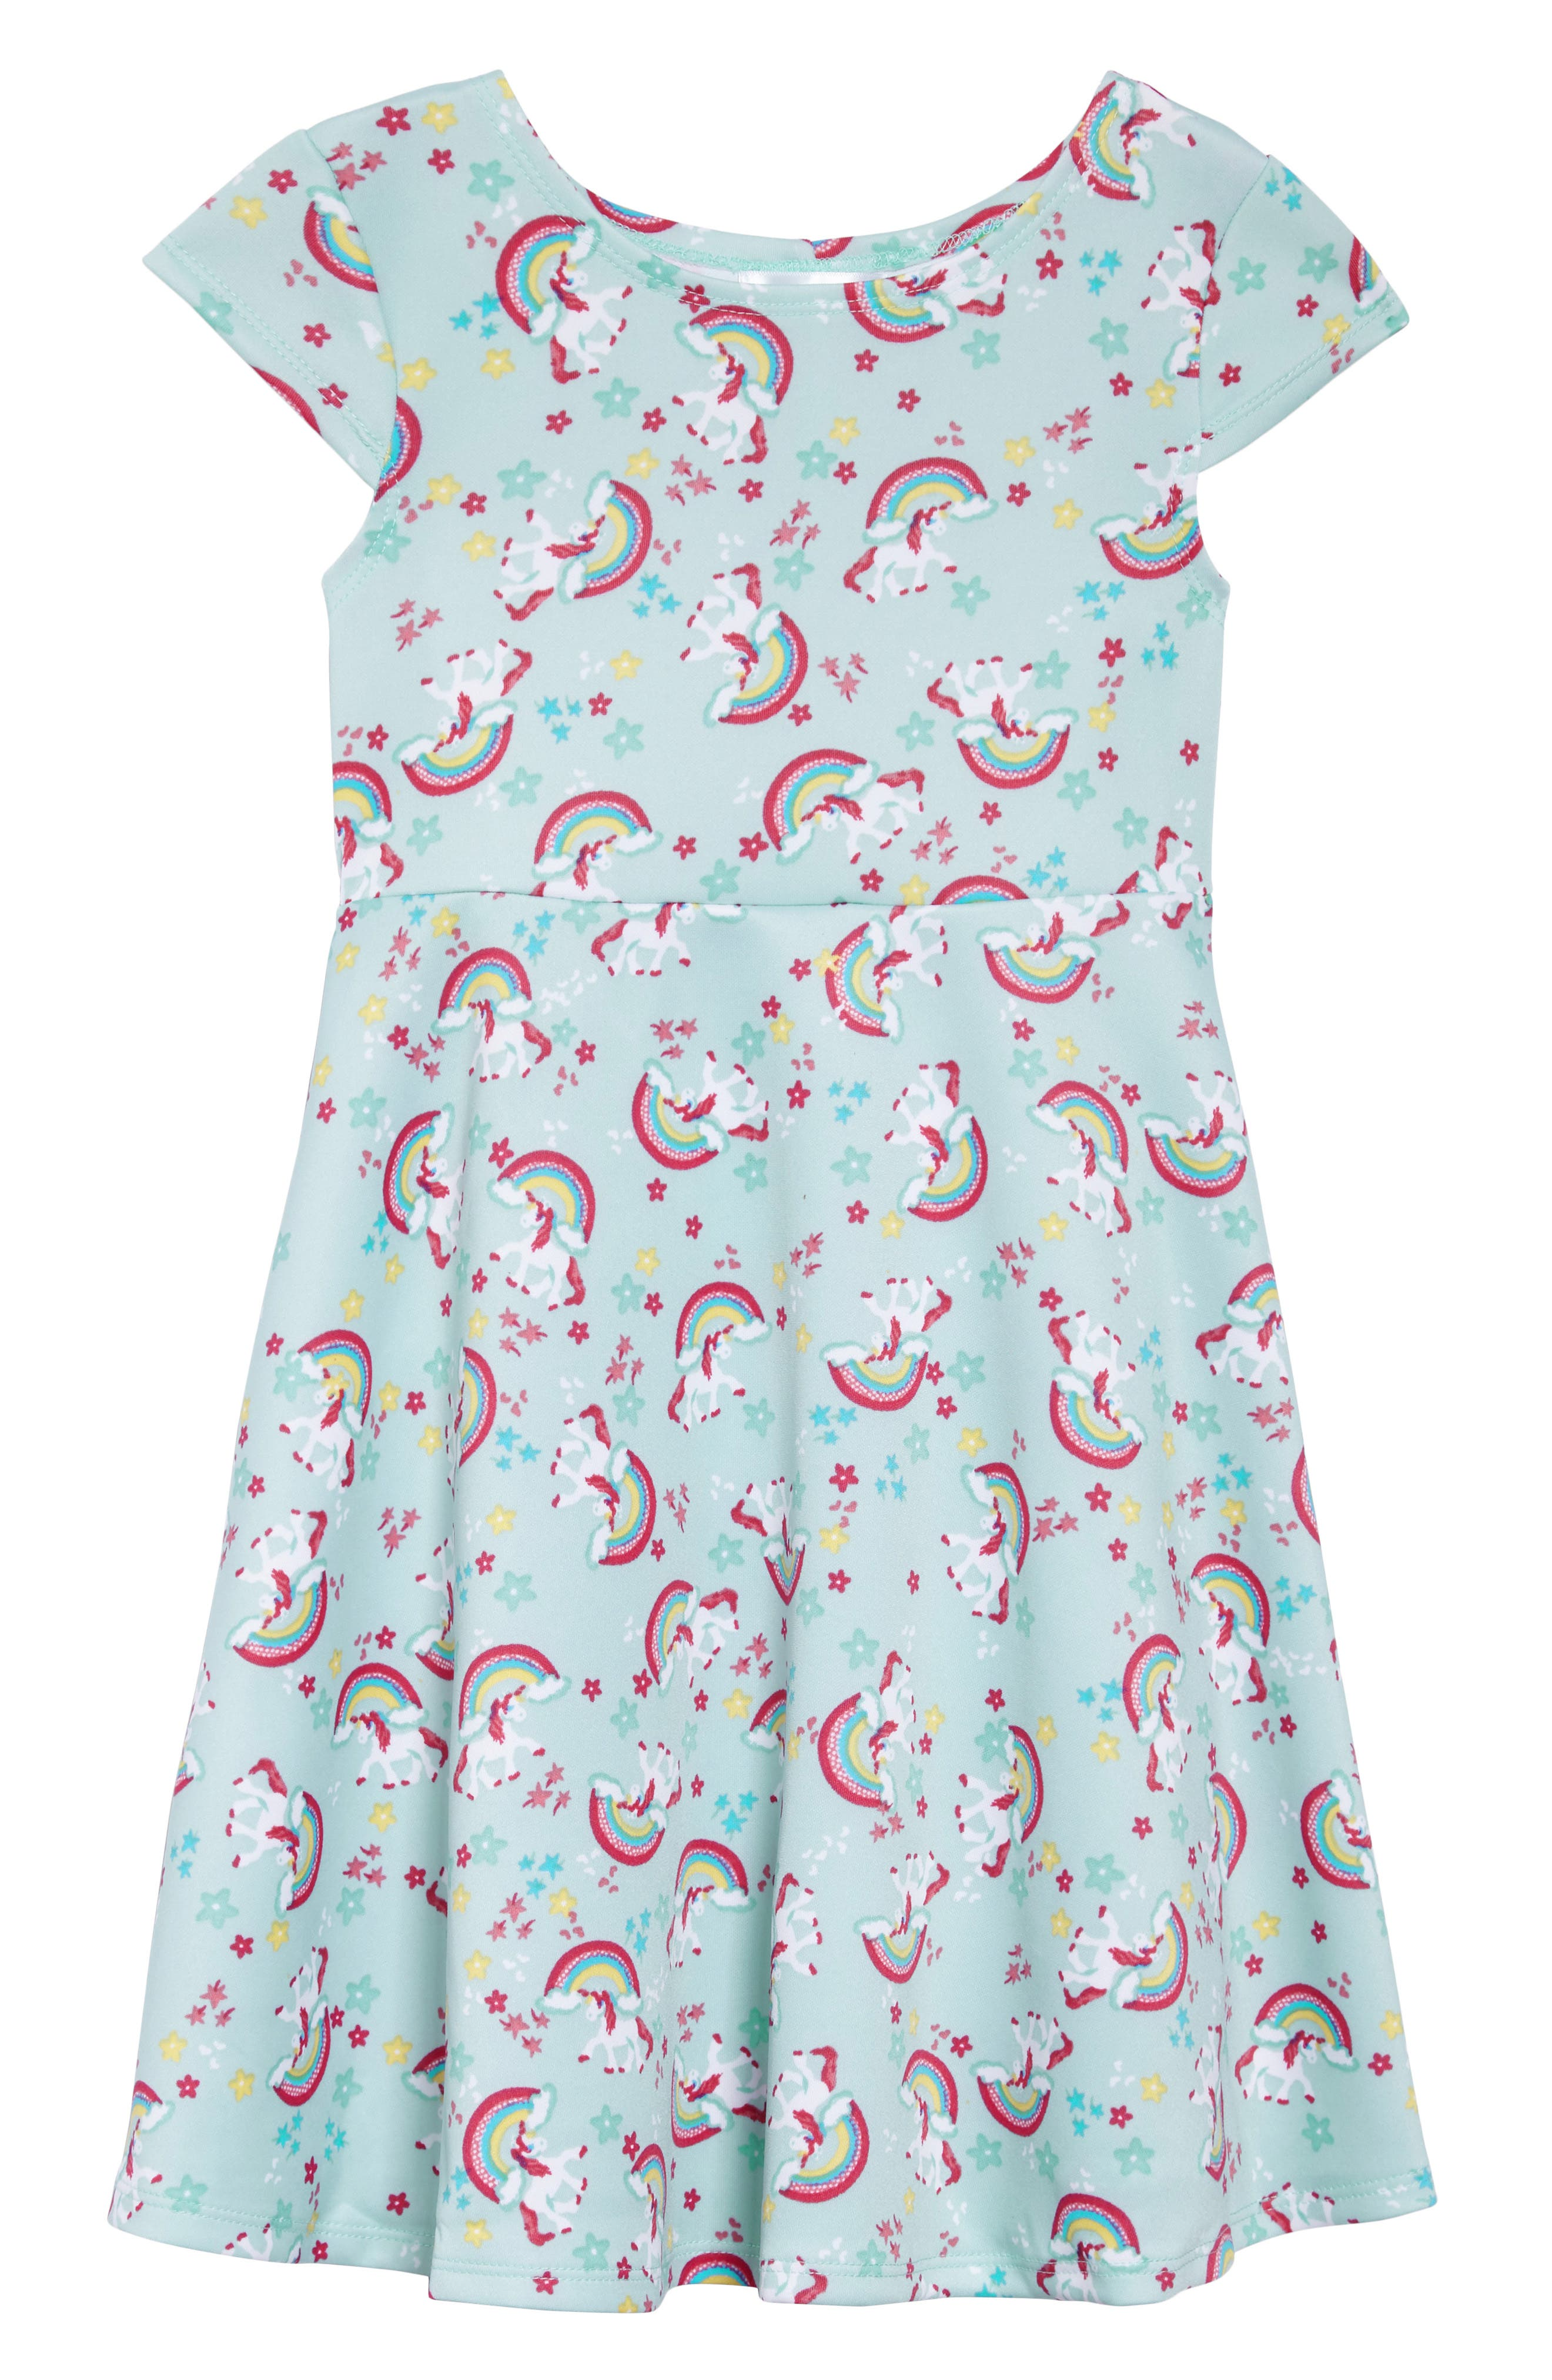 Unicorn Print Dress,                         Main,                         color, Mint/ Pink